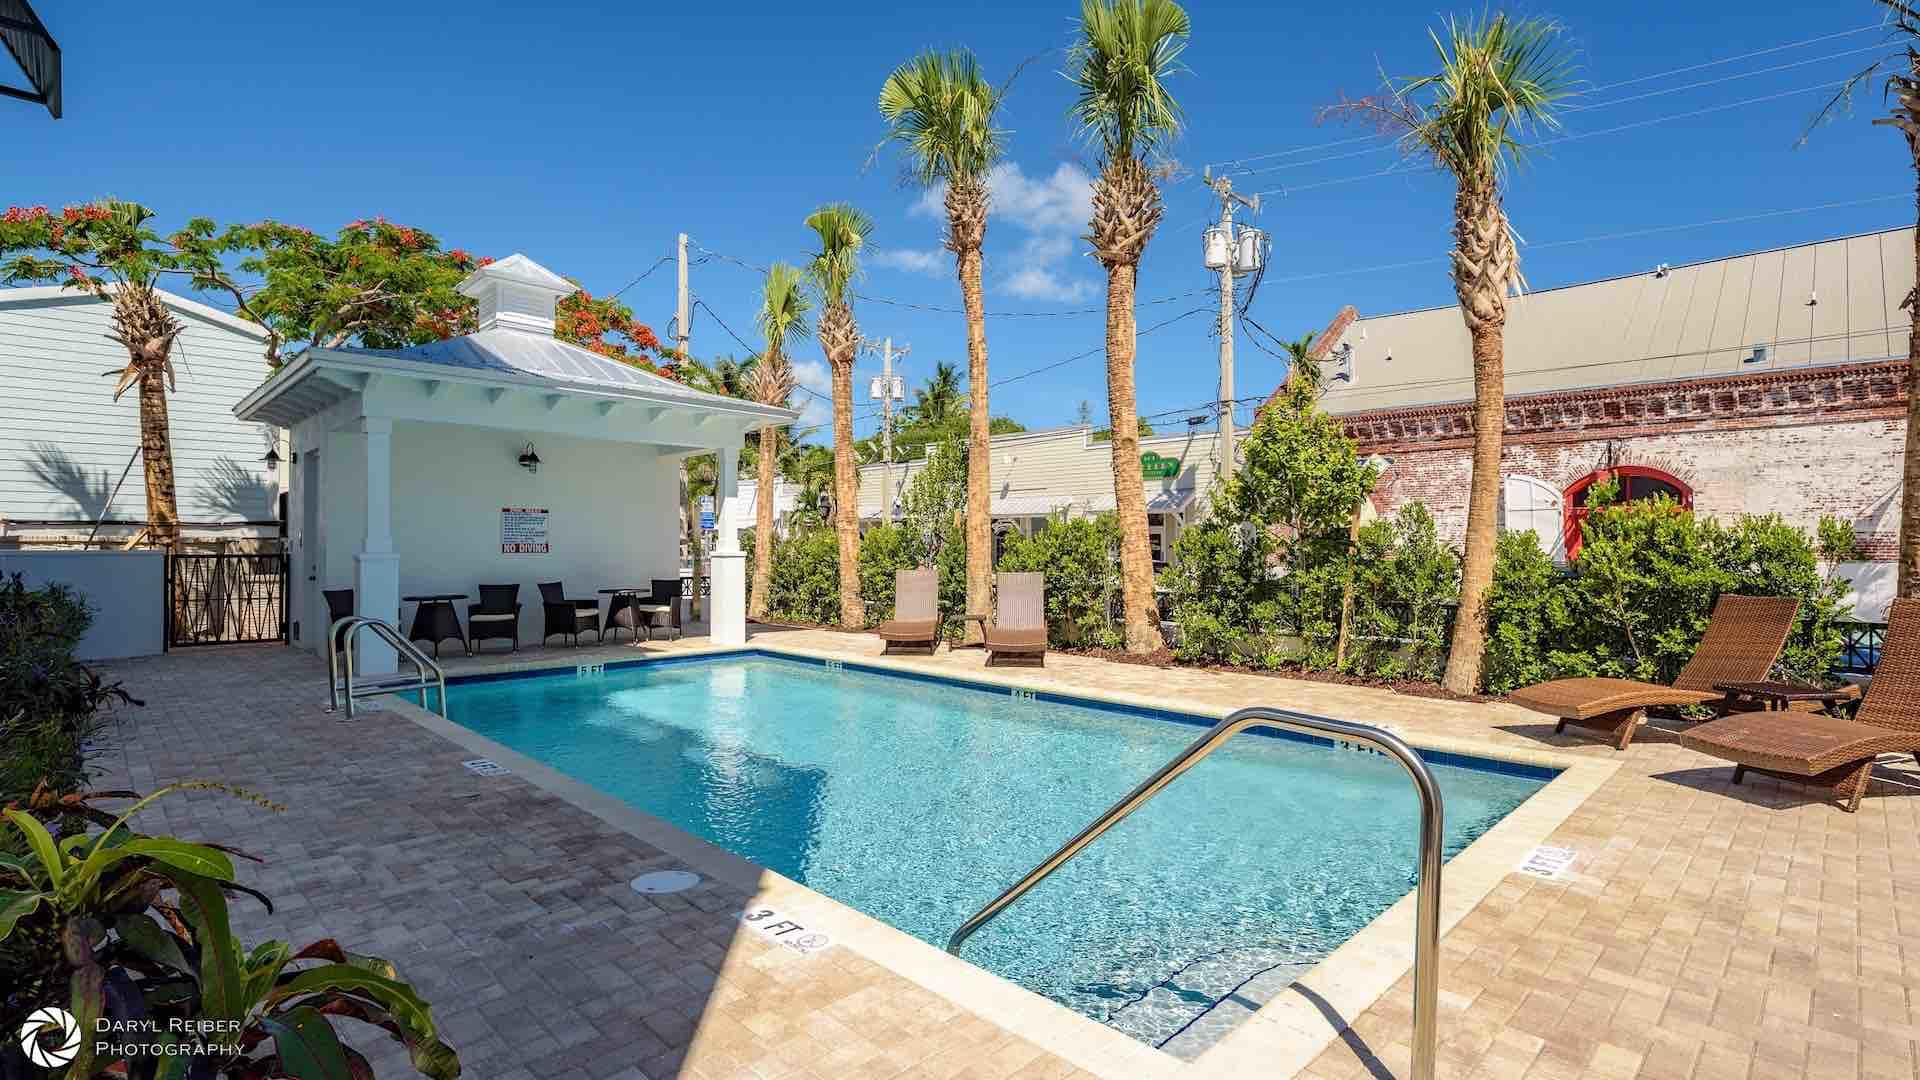 The Community Pool has chaise lounges and a Cabana with bathrooms...